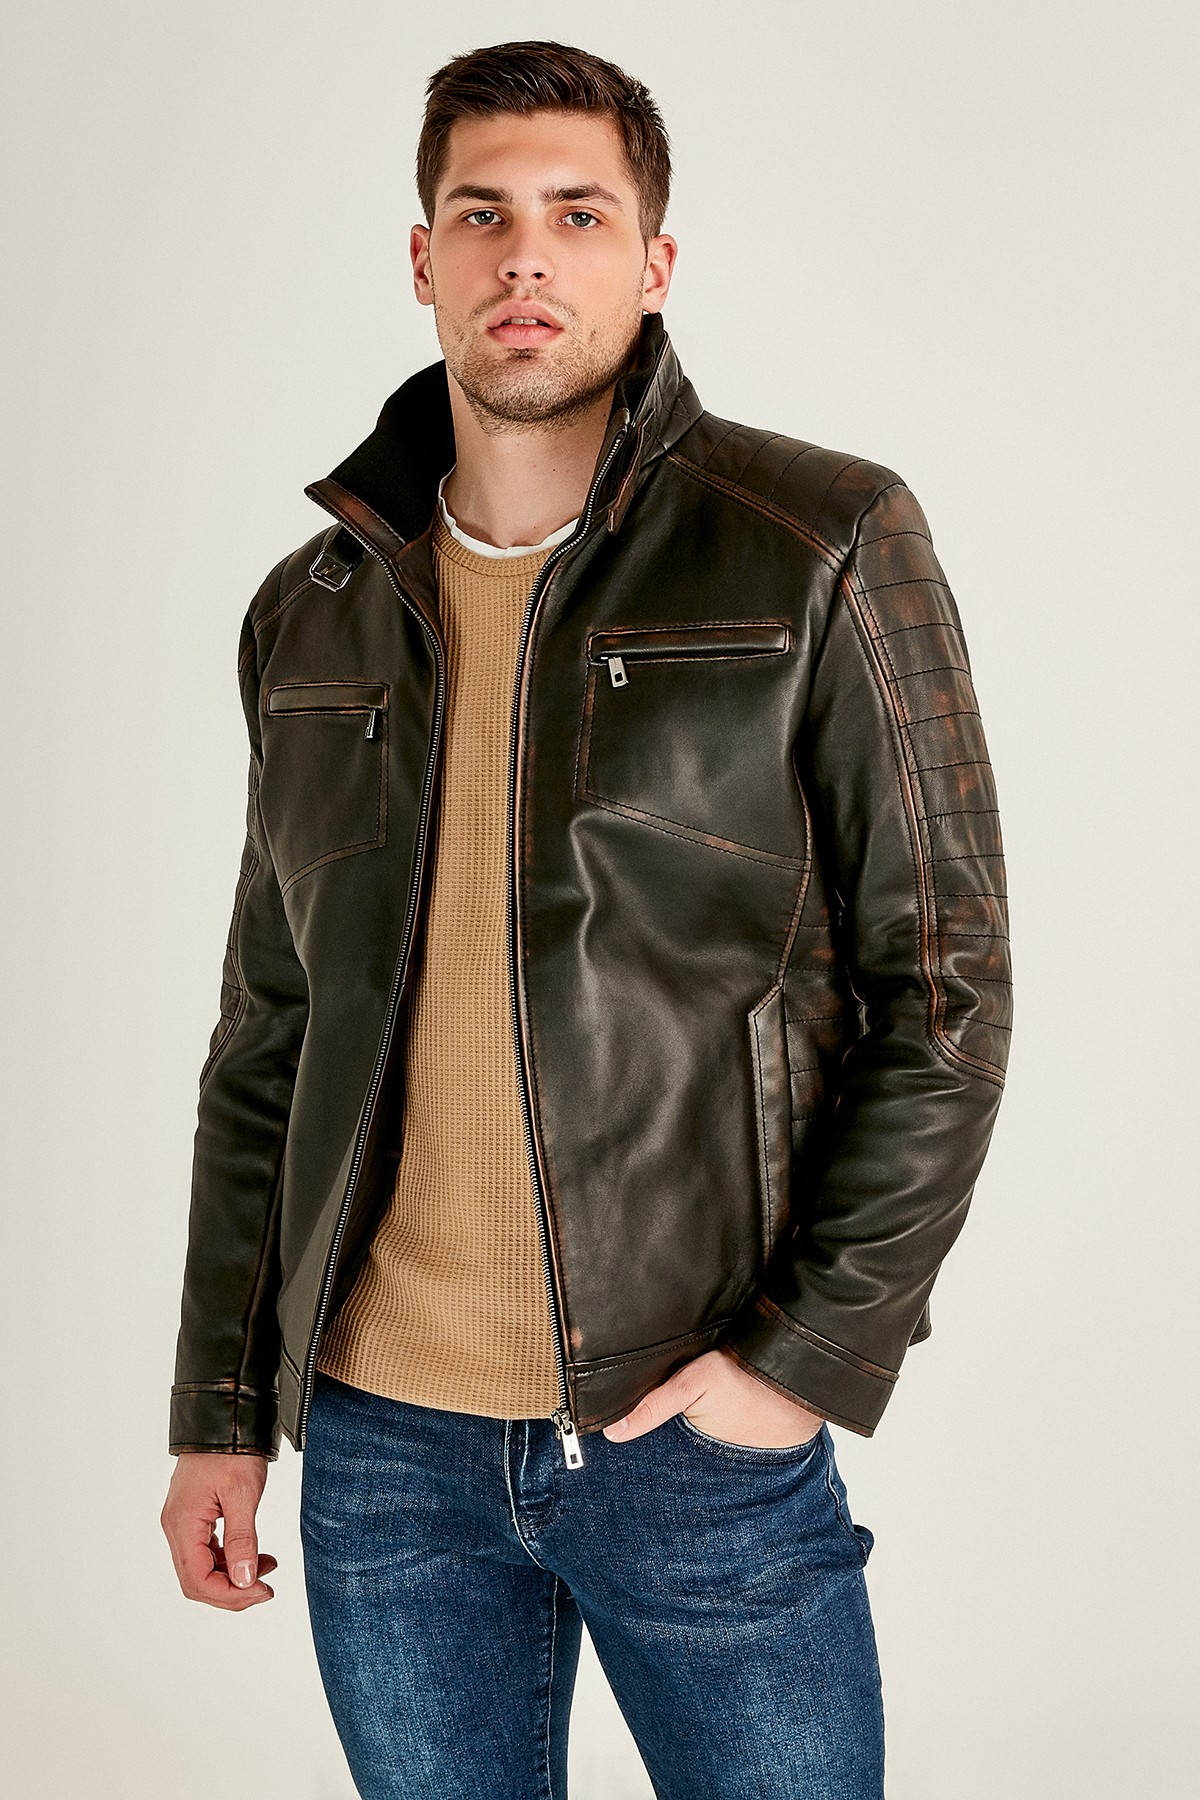 how to identify real leather jacket